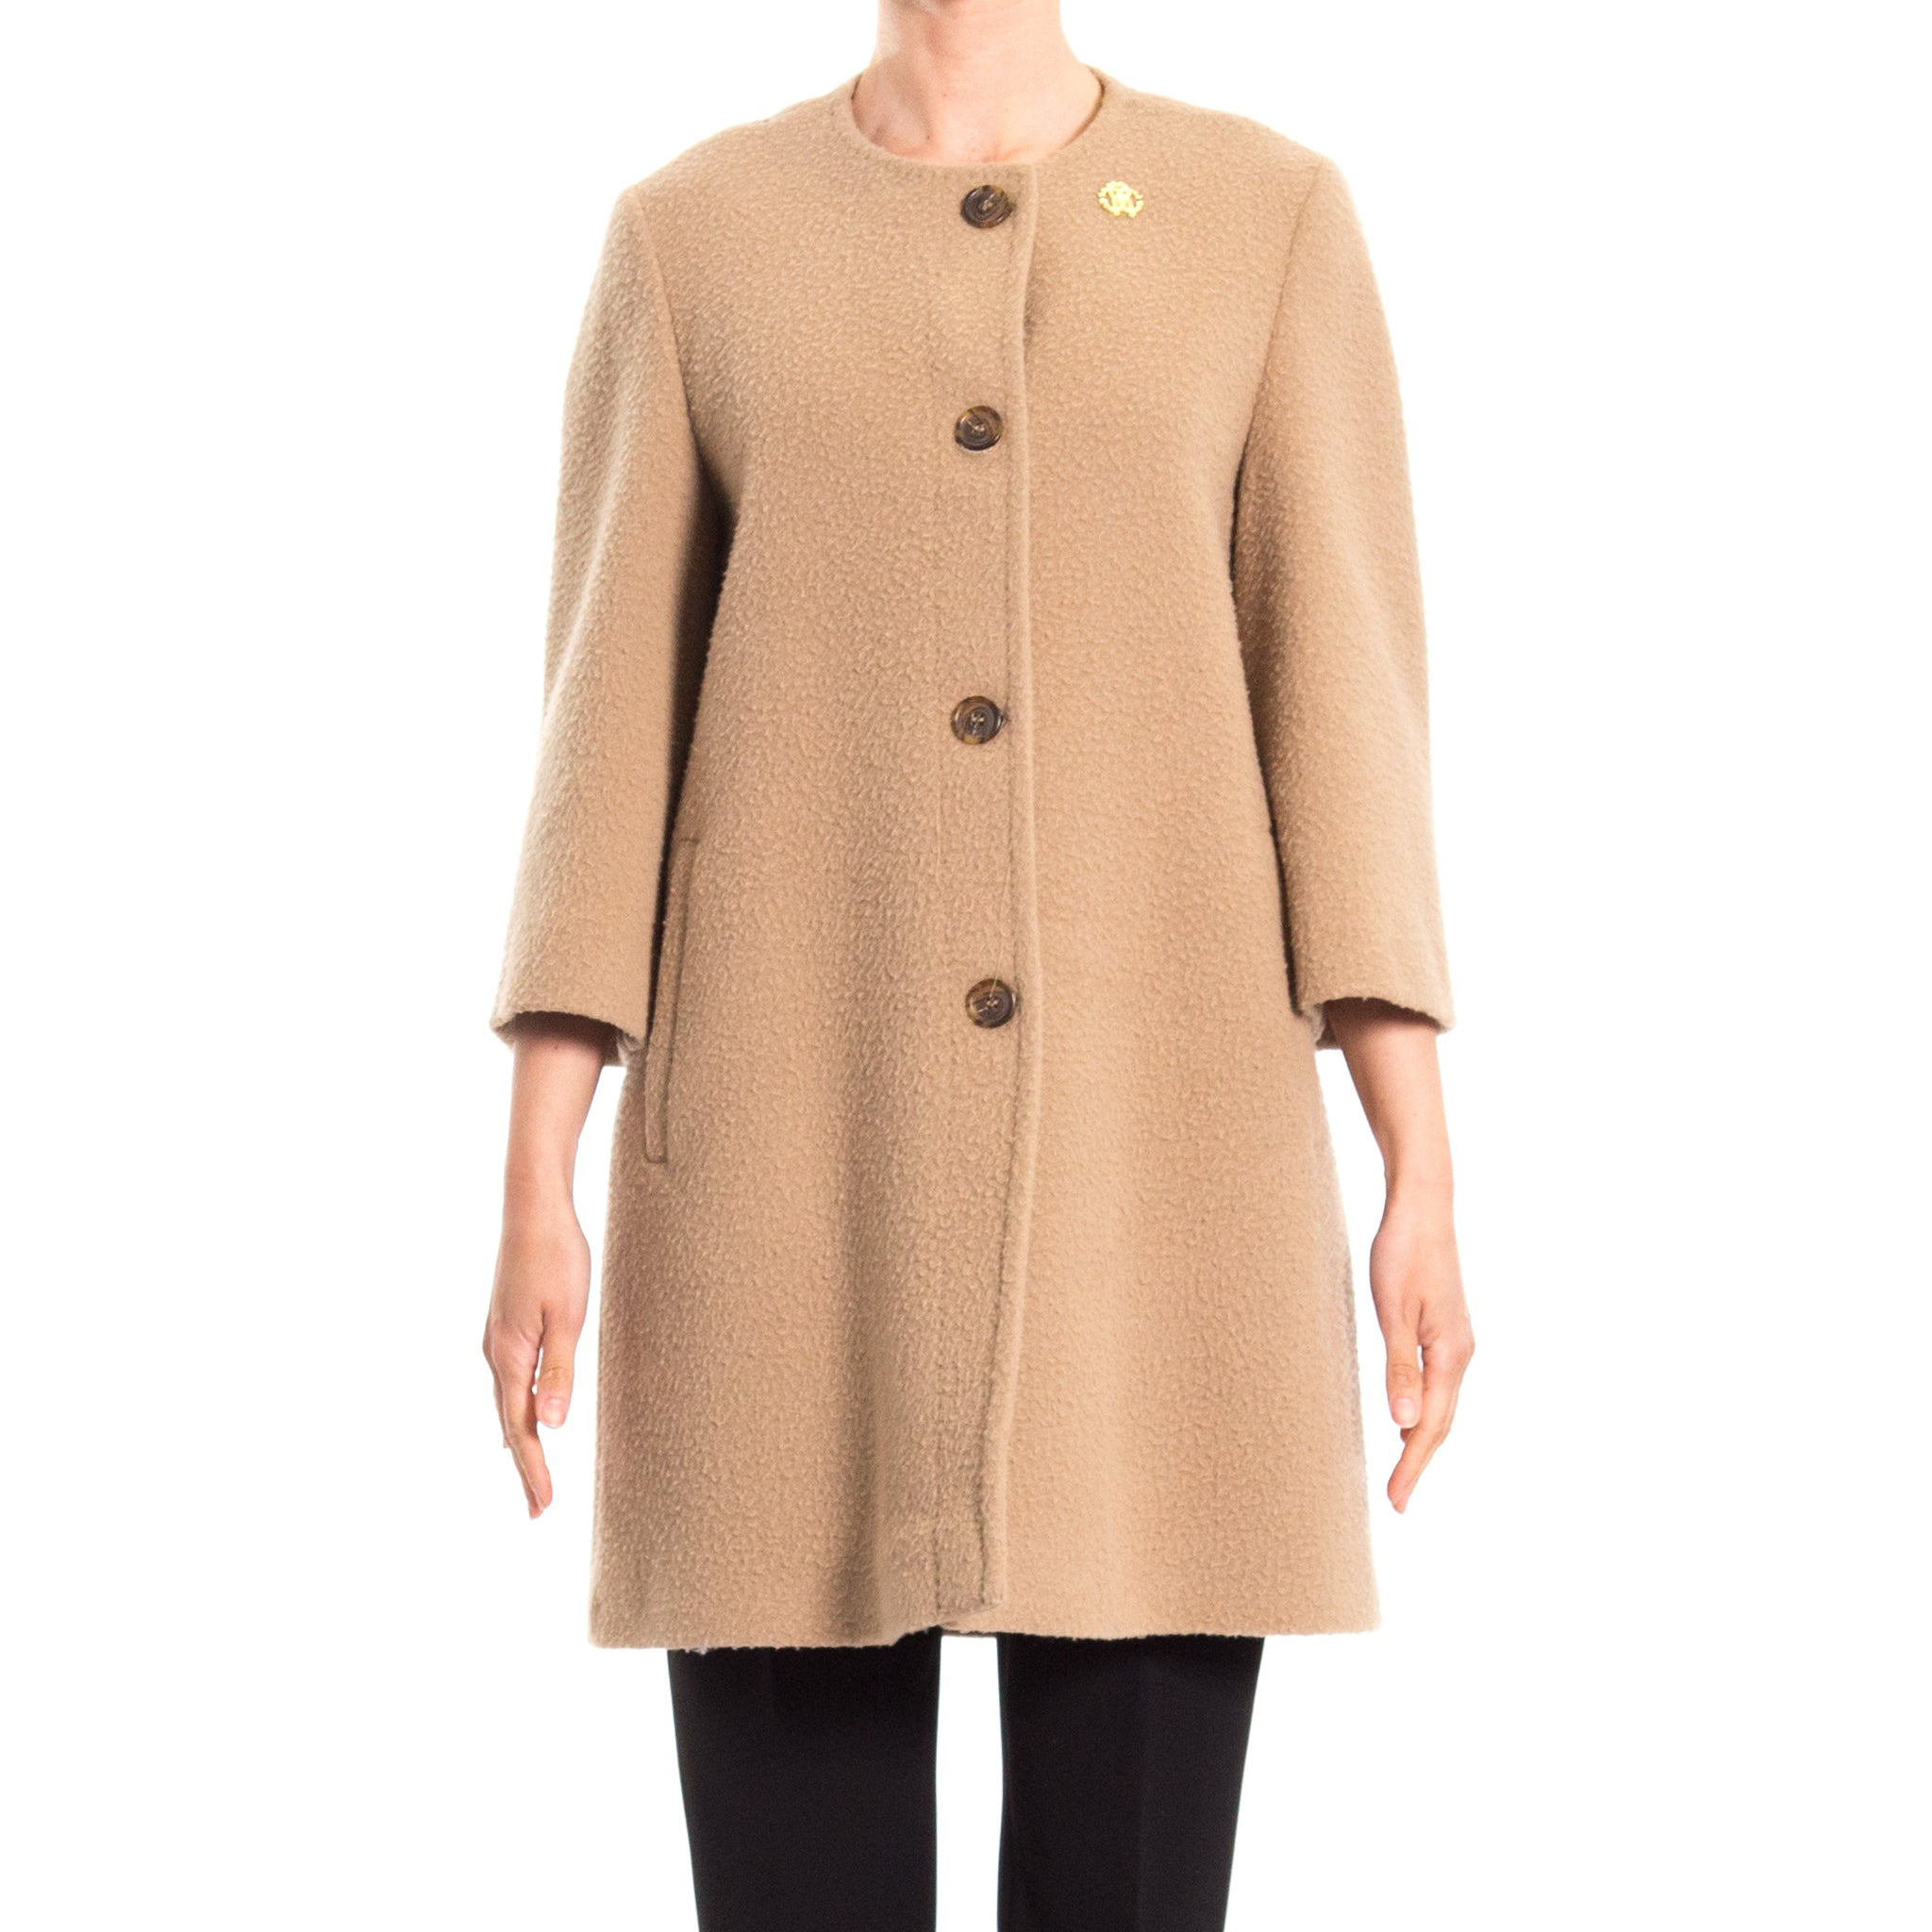 Wool Blend Coat-ROBERTO CAVALLI-SHOPATVOI.COM - Luxury Fashion Designer